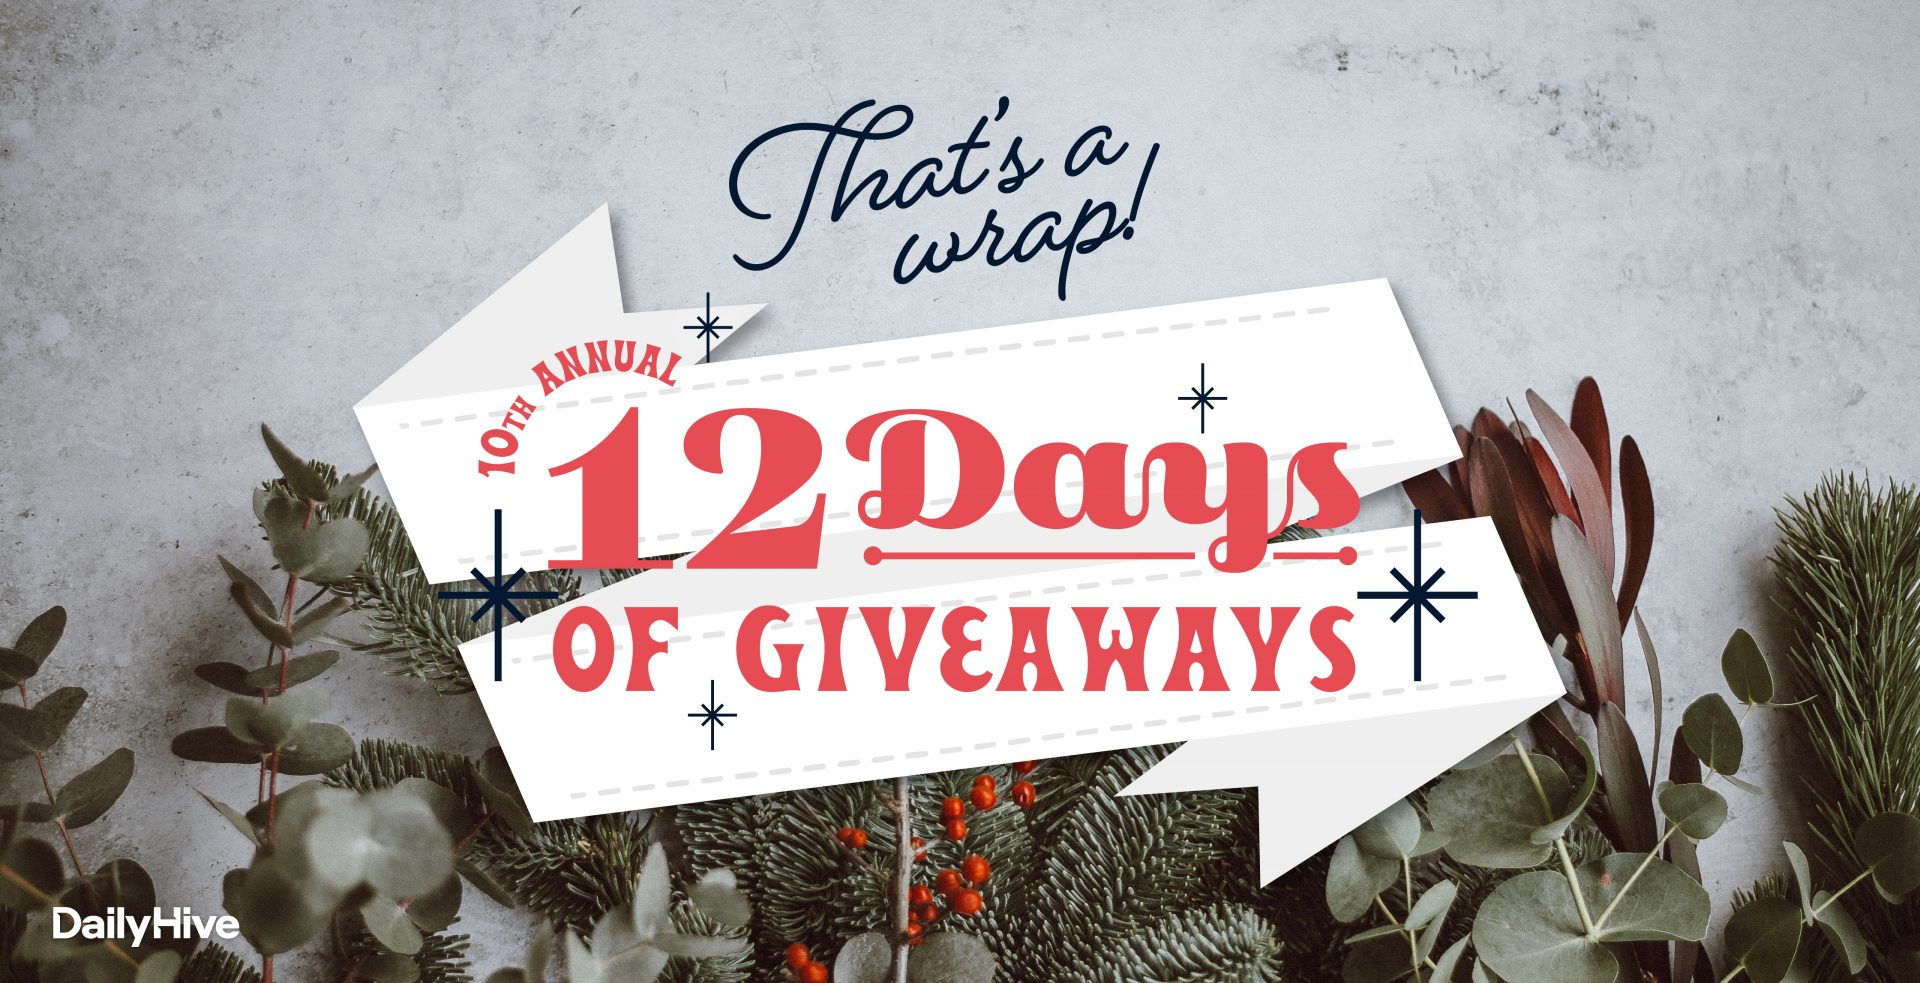 The Nice List: 12 Days of Giveaways 2020 winners announced